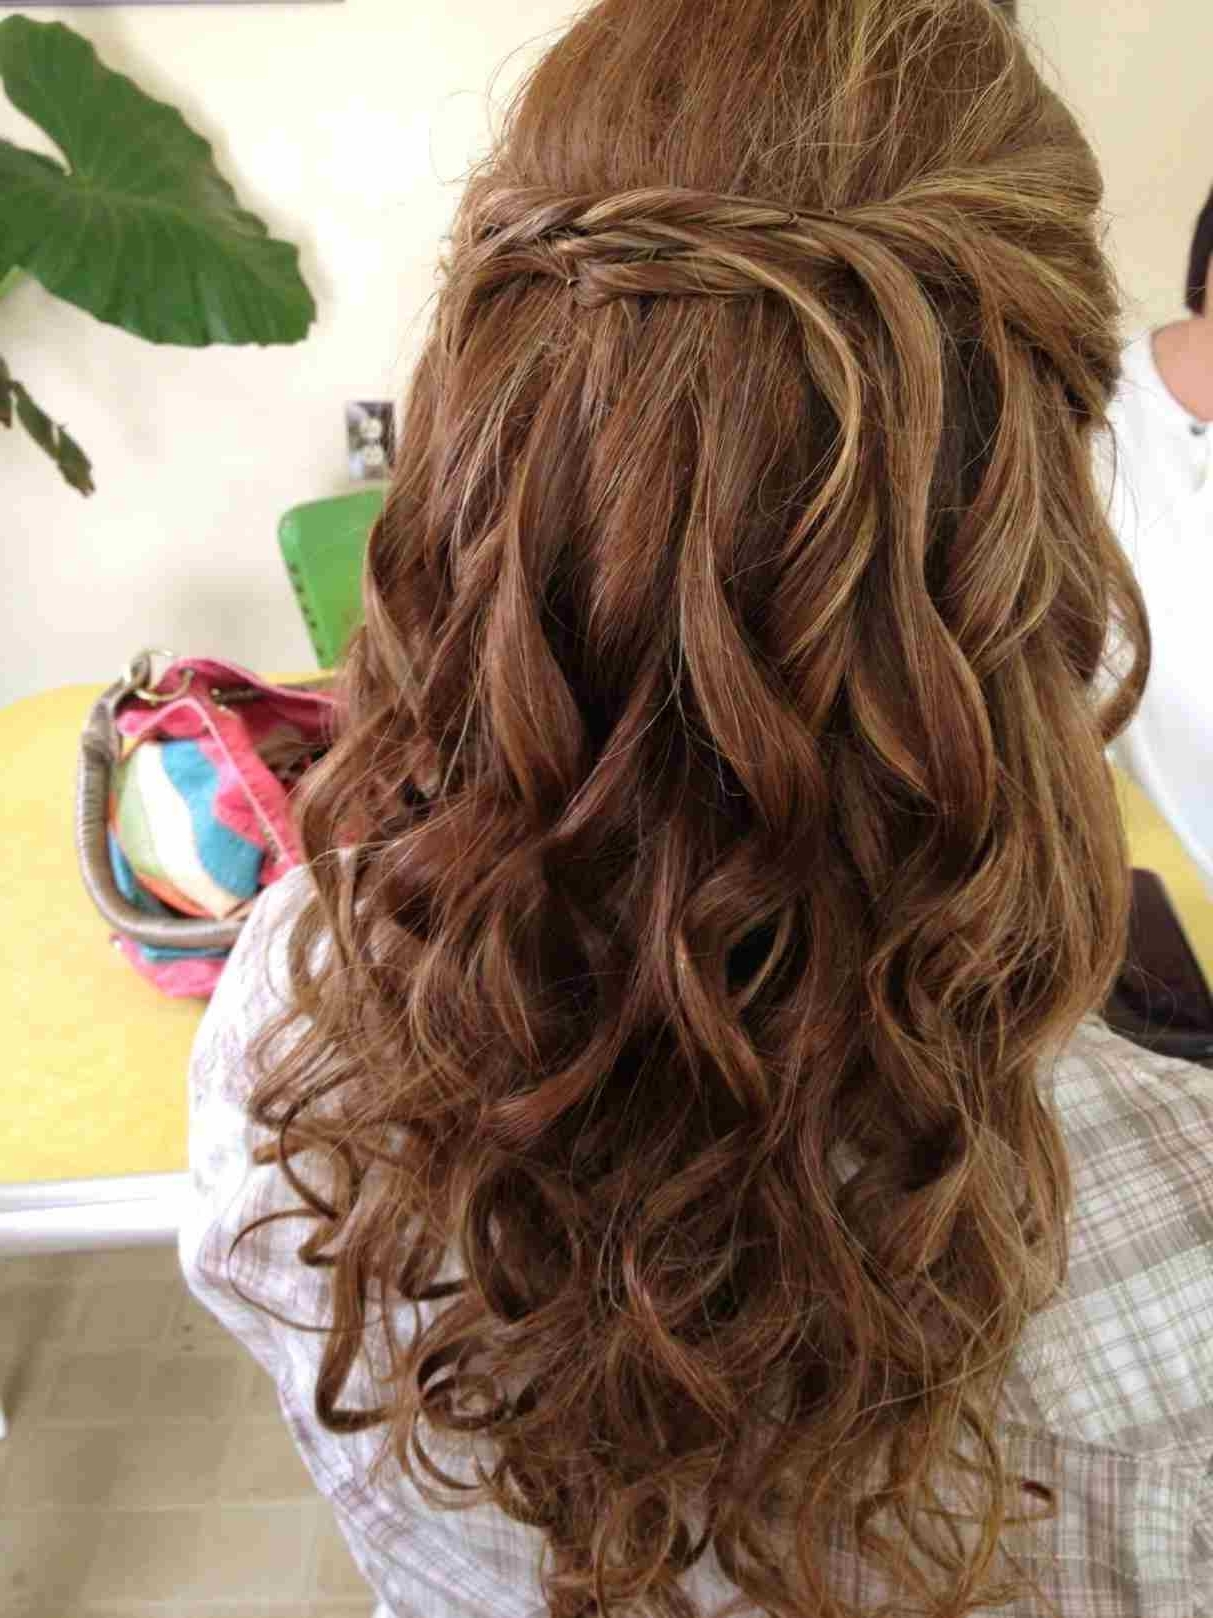 Curly French Braid Hairstyles With Curls Prom Hairstyle For Long Inside Famous French Braid Hairstyles With Curls (View 1 of 15)